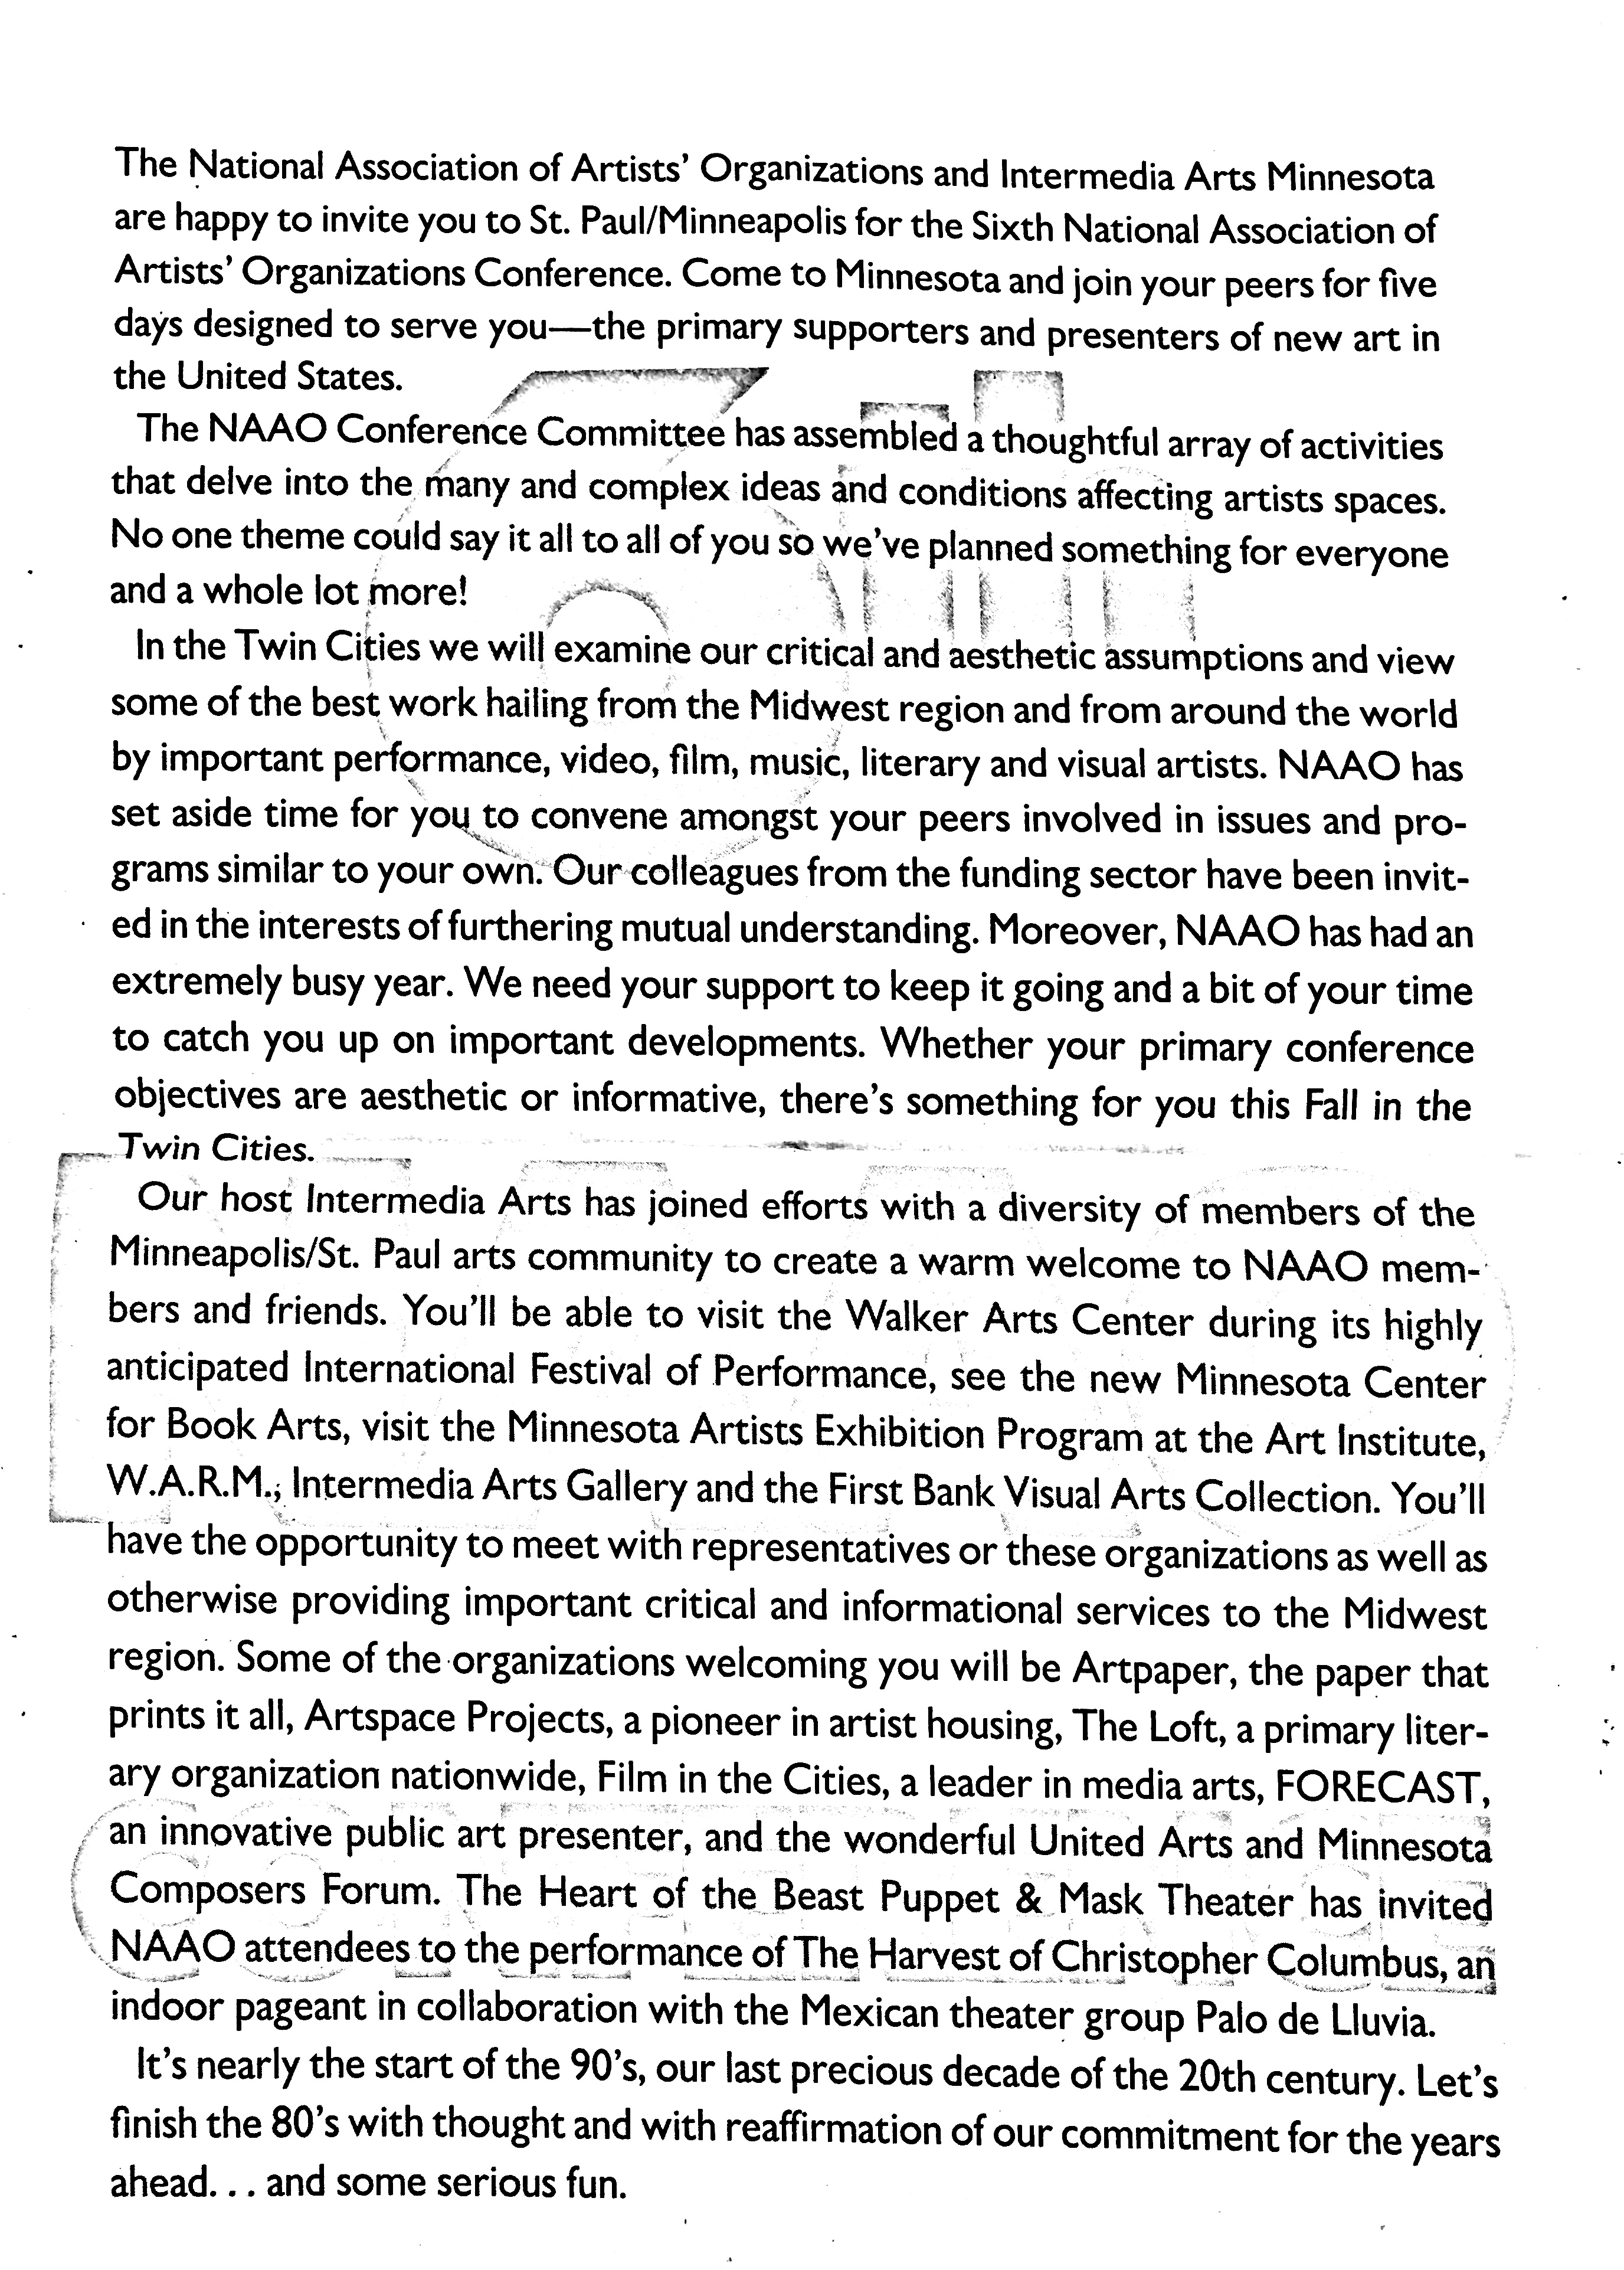 October 11-15, 1989 - 6th NAAO Conference Page 1.jpg